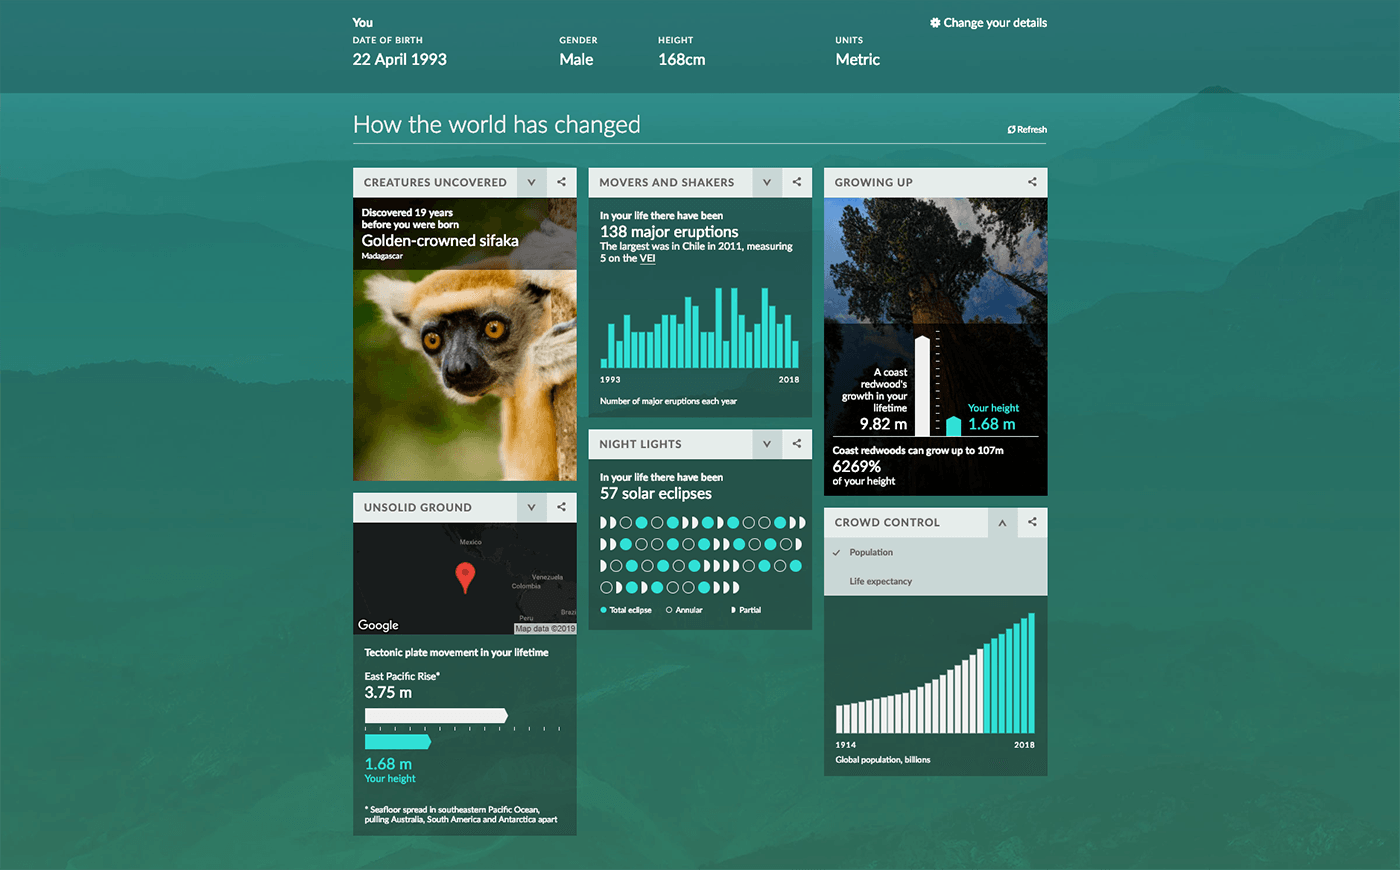 series of modules showing different data visualizations about how the world has changed